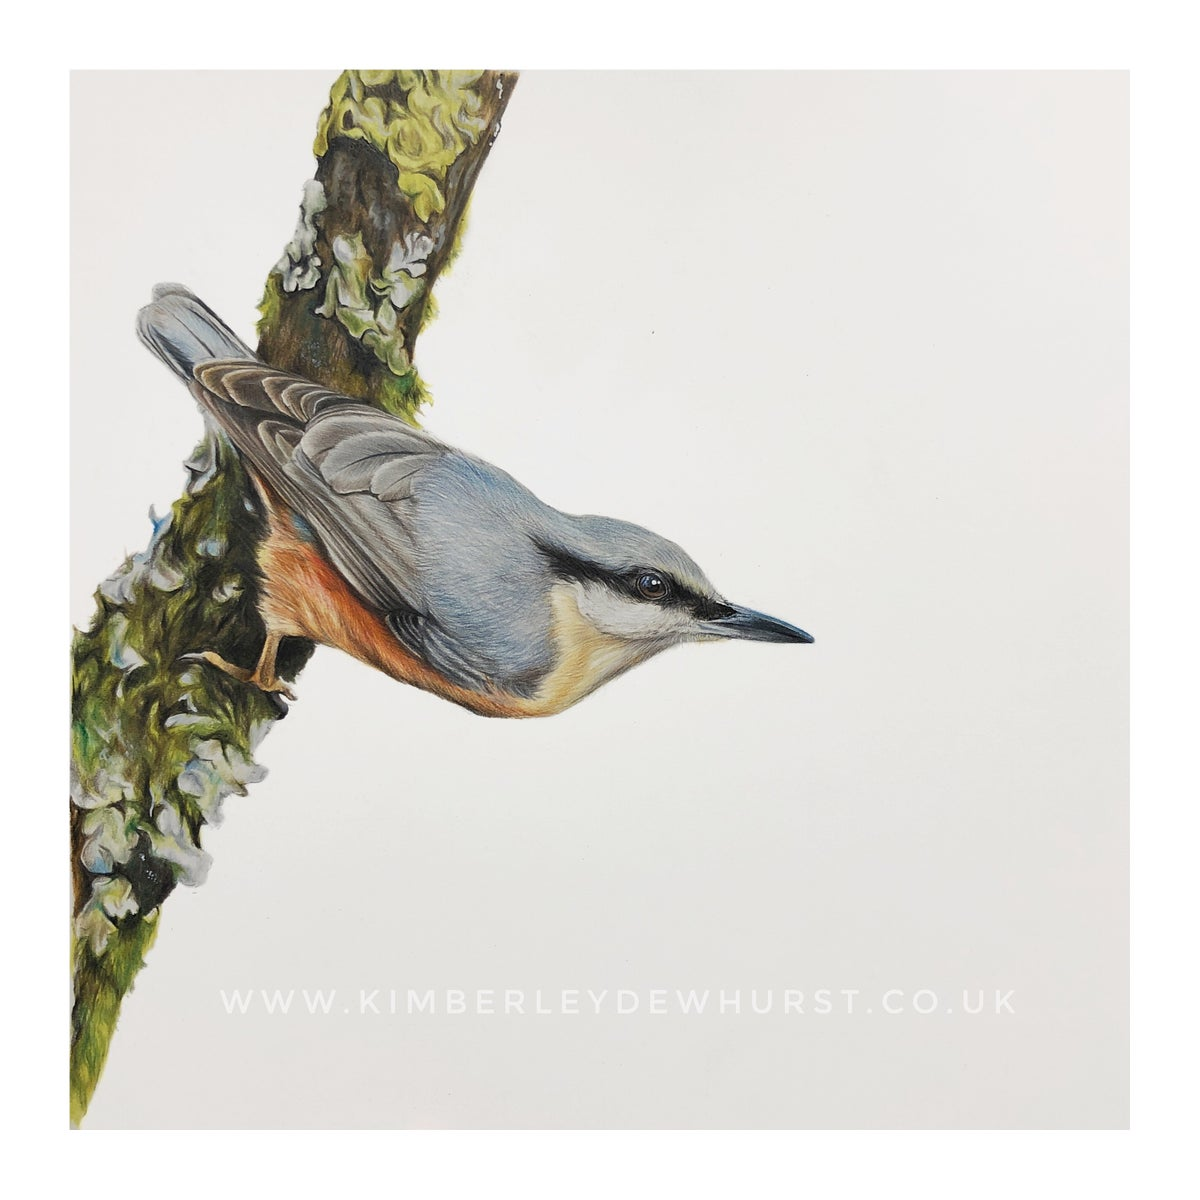 Image of 'Nuthatch' Limited Edition Print